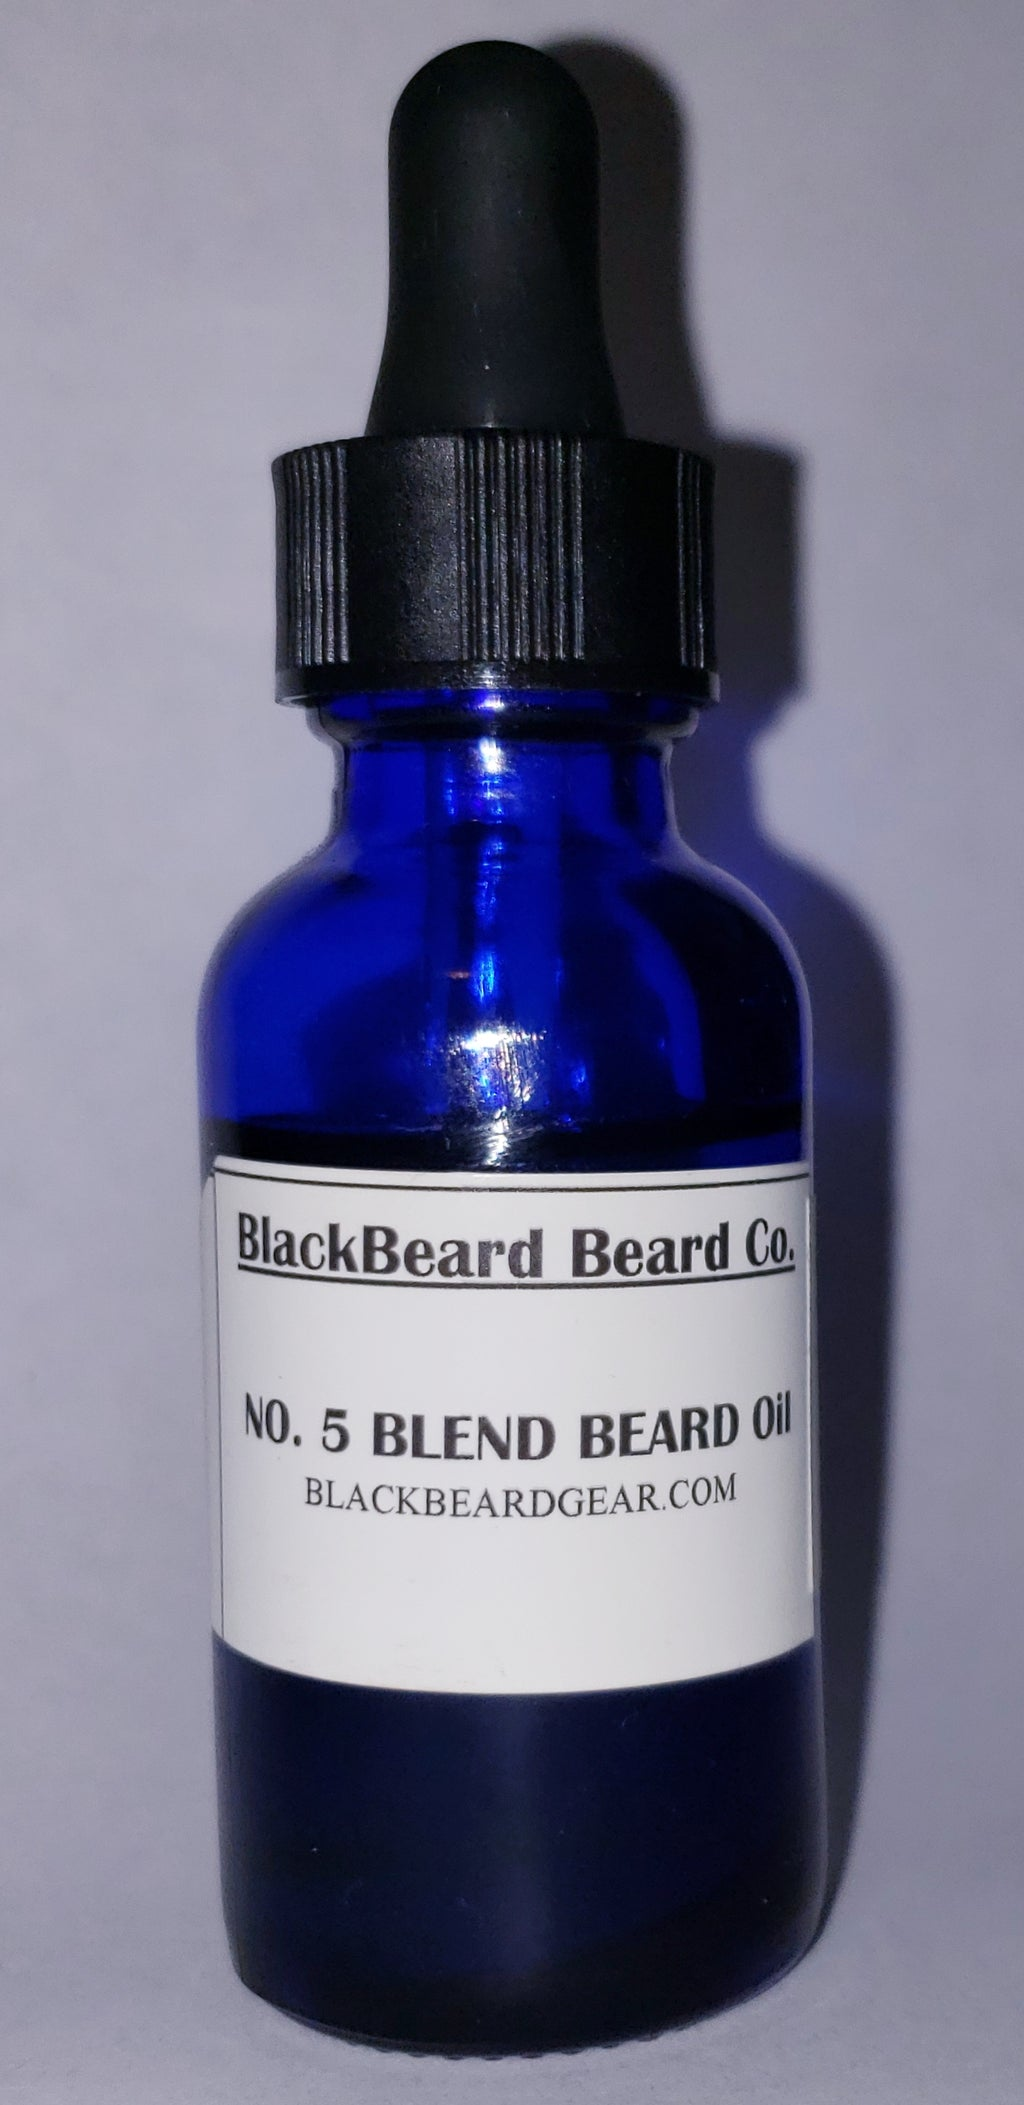 No. 5 Beard Oil